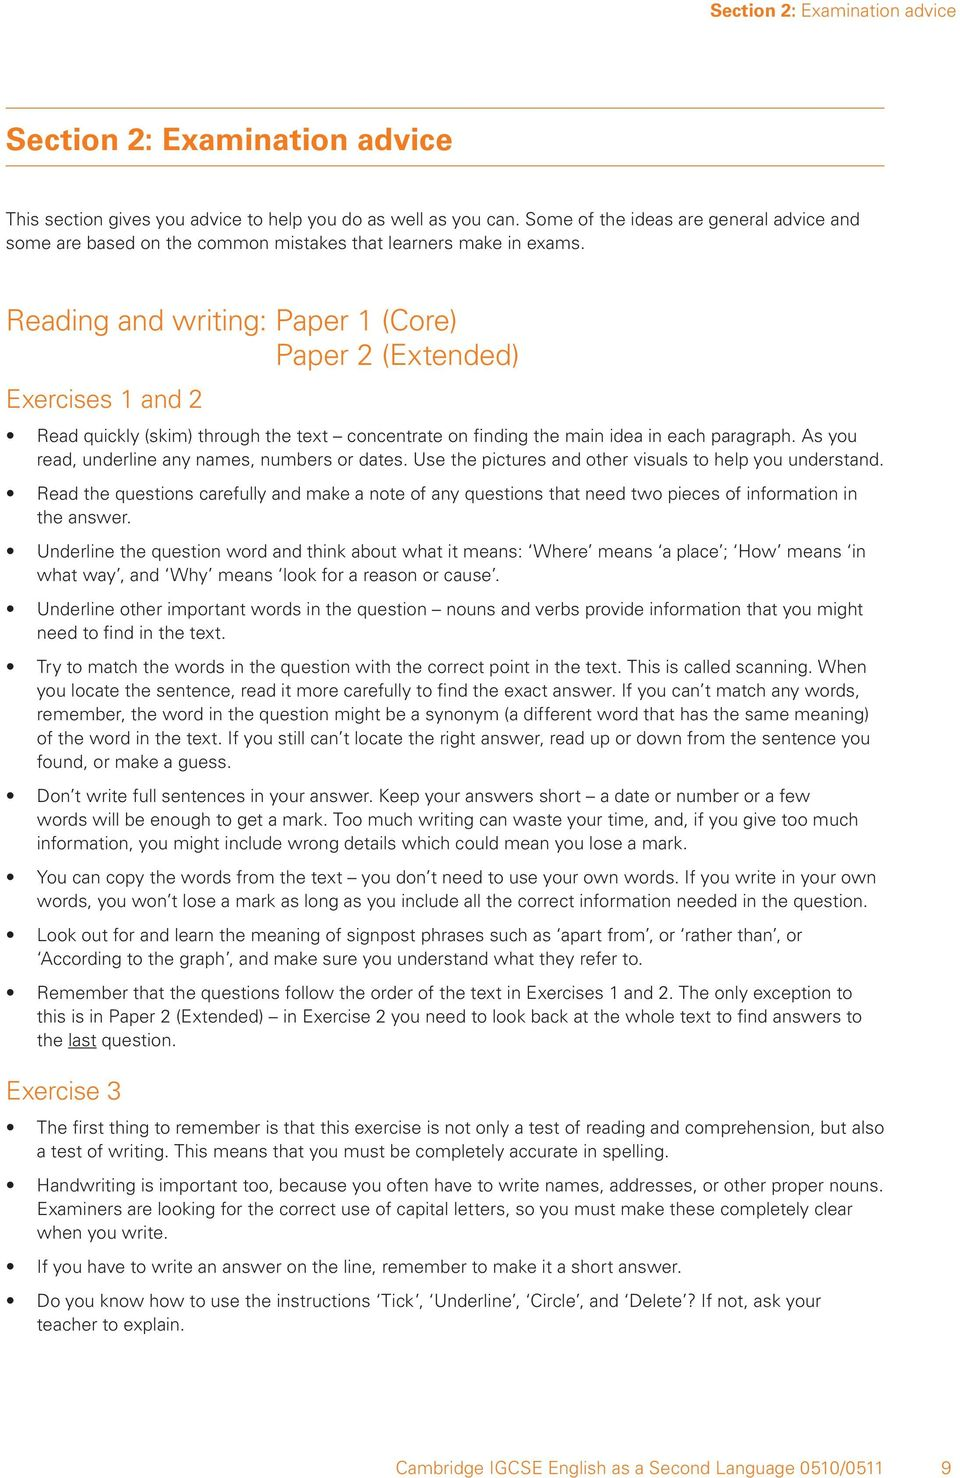 Reading and writing: Paper 1 (Core) Paper 2 (Extended) Exercises 1 and 2 Read quickly (skim) through the text concentrate on finding the main idea in each paragraph.